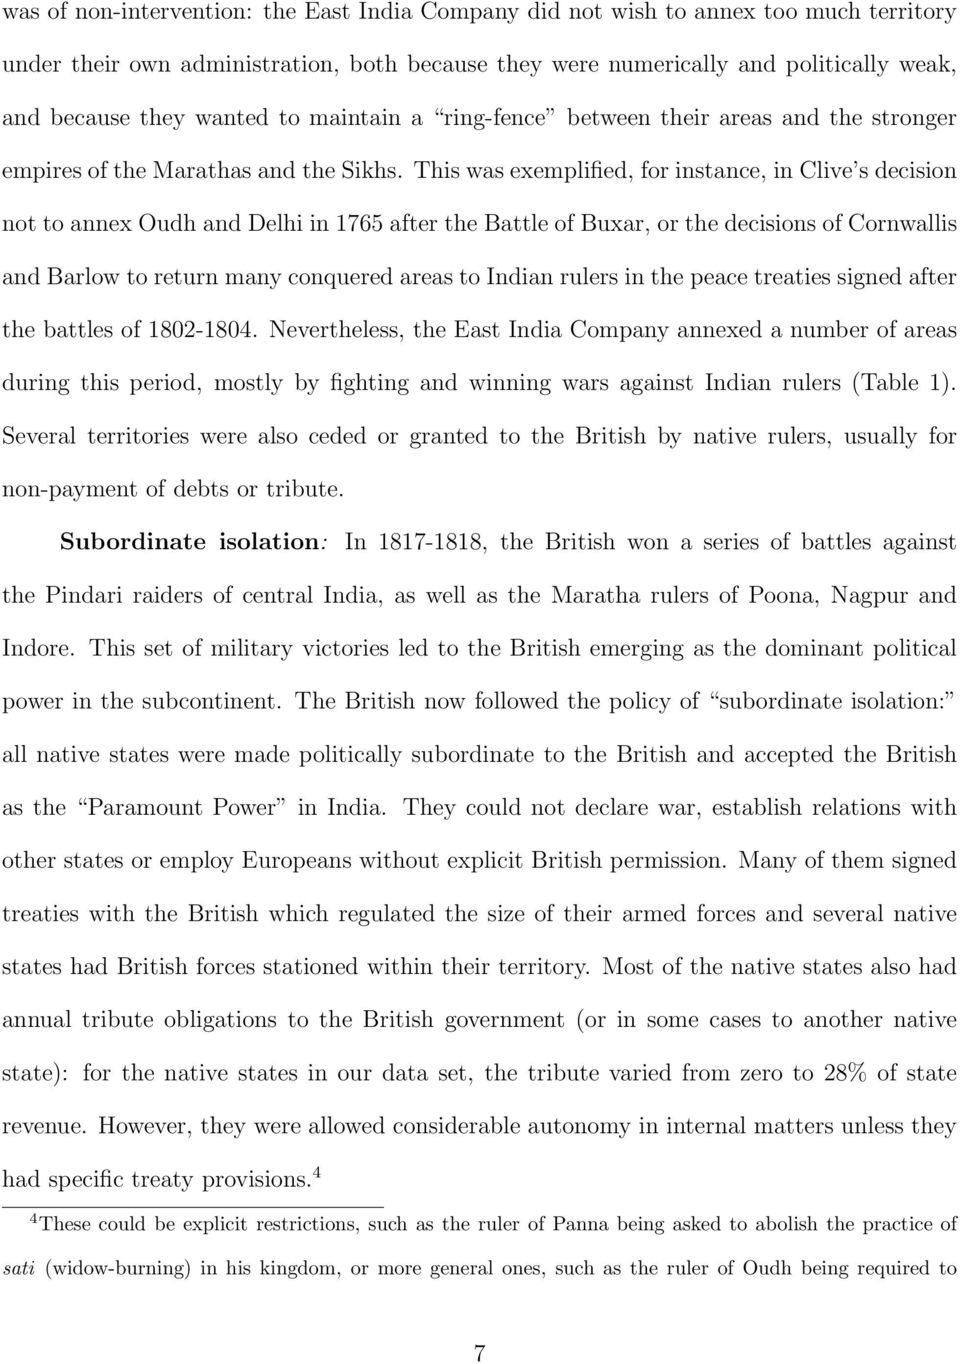 This was exemplified, for instance, in Clive s decision not to annex Oudh and Delhi in 1765 after the Battle of Buxar, or the decisions of Cornwallis and Barlow to return many conquered areas to